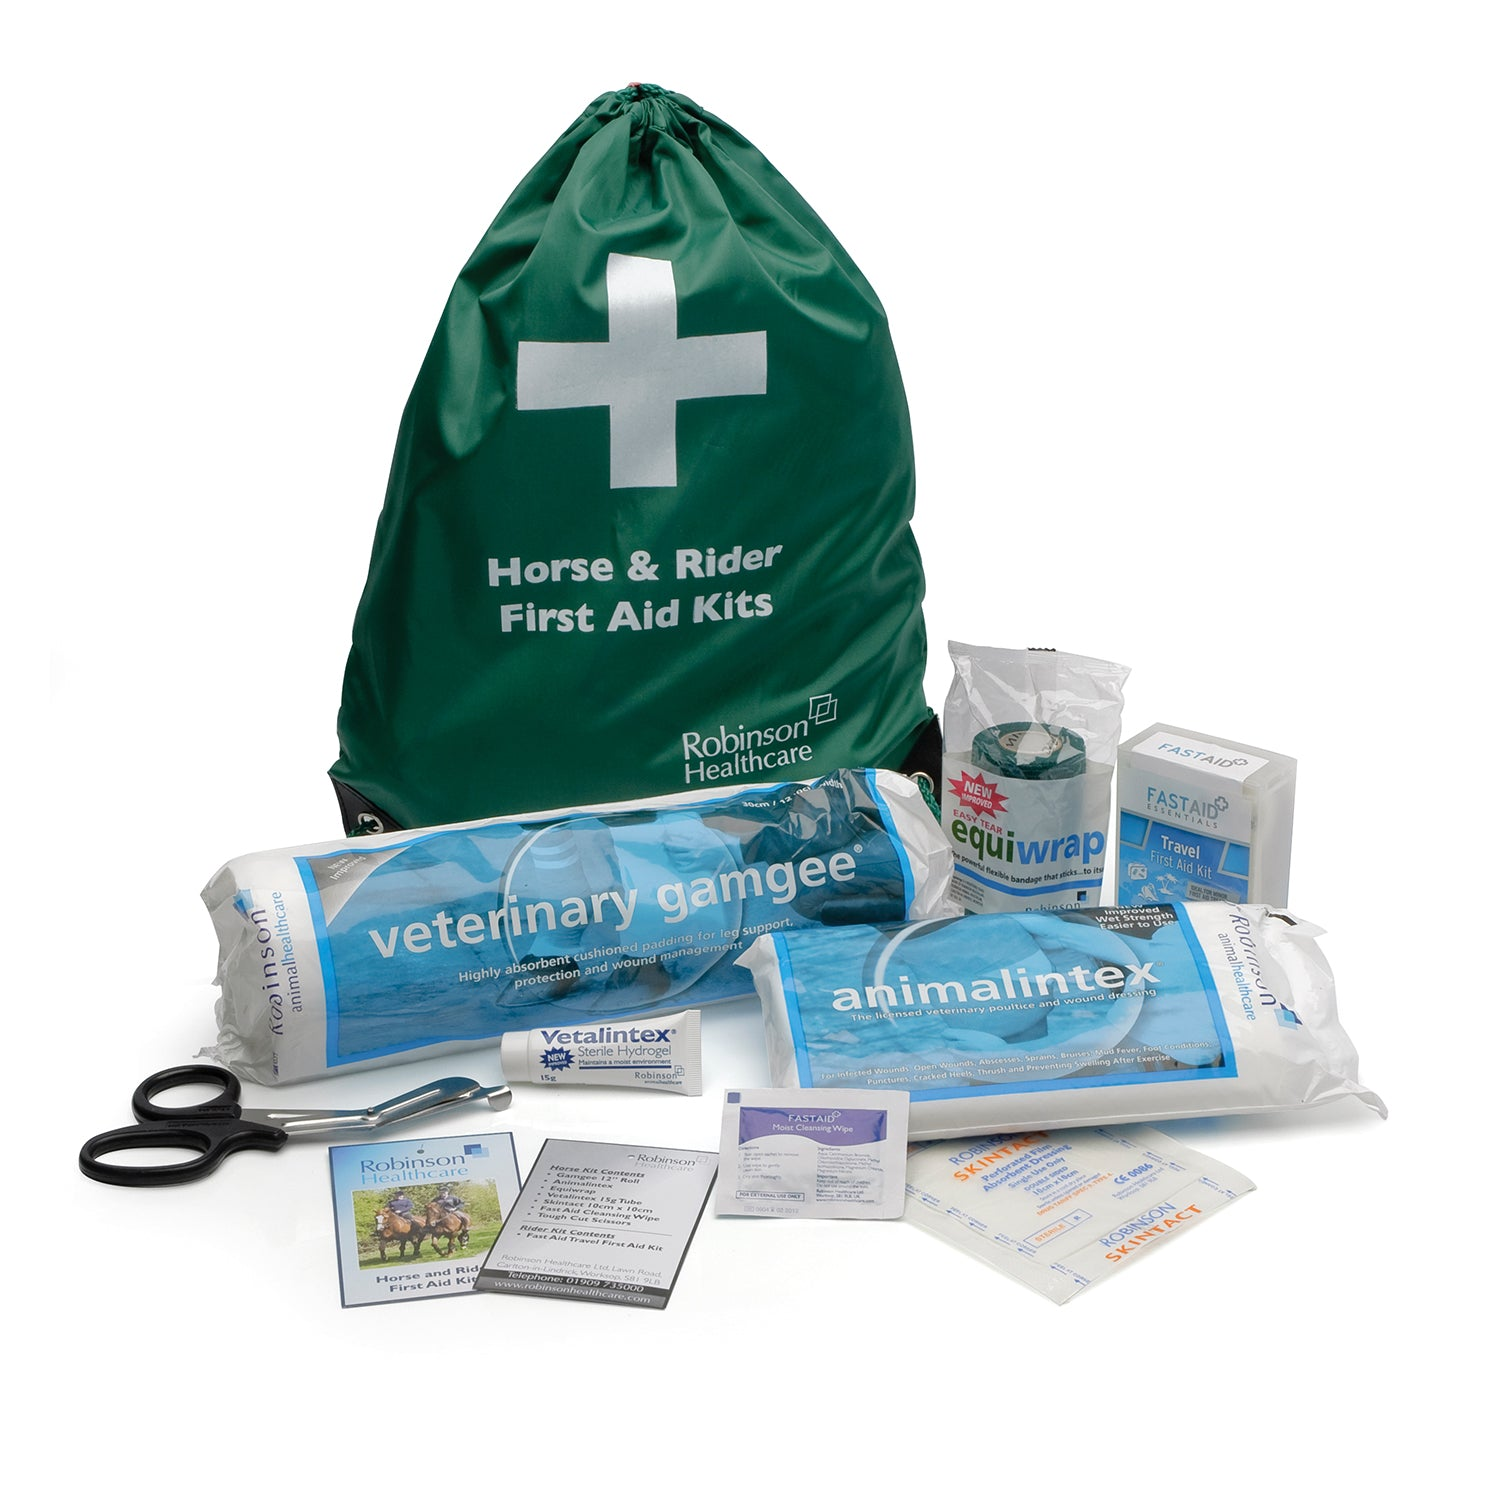 ROBINSONS HEALTHCARE HORSE & RIDER FIRST AID KIT